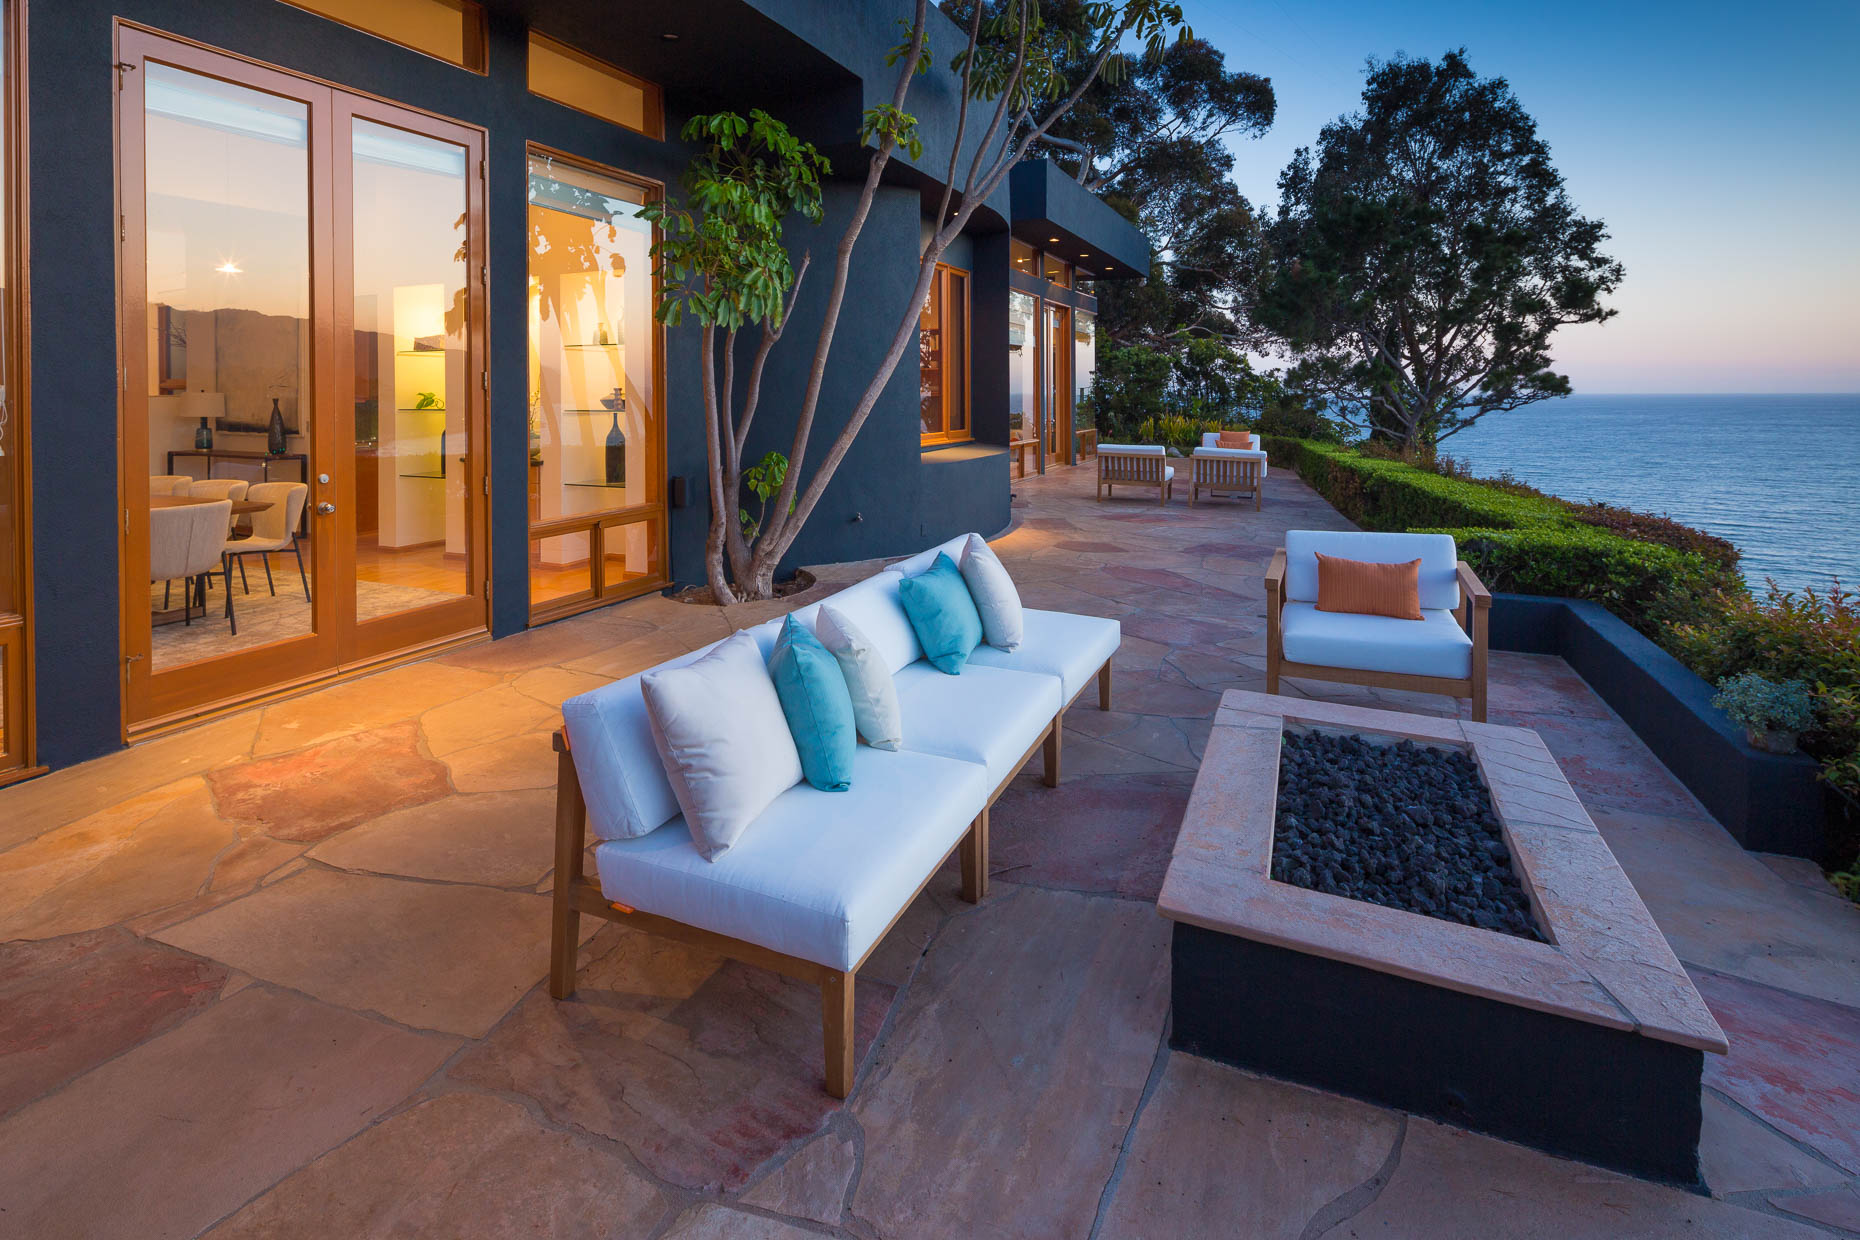 Architecture photograph of patio of home overlooking ocean in Pacific Palisades, Los Angeles, California, by David Zaitz